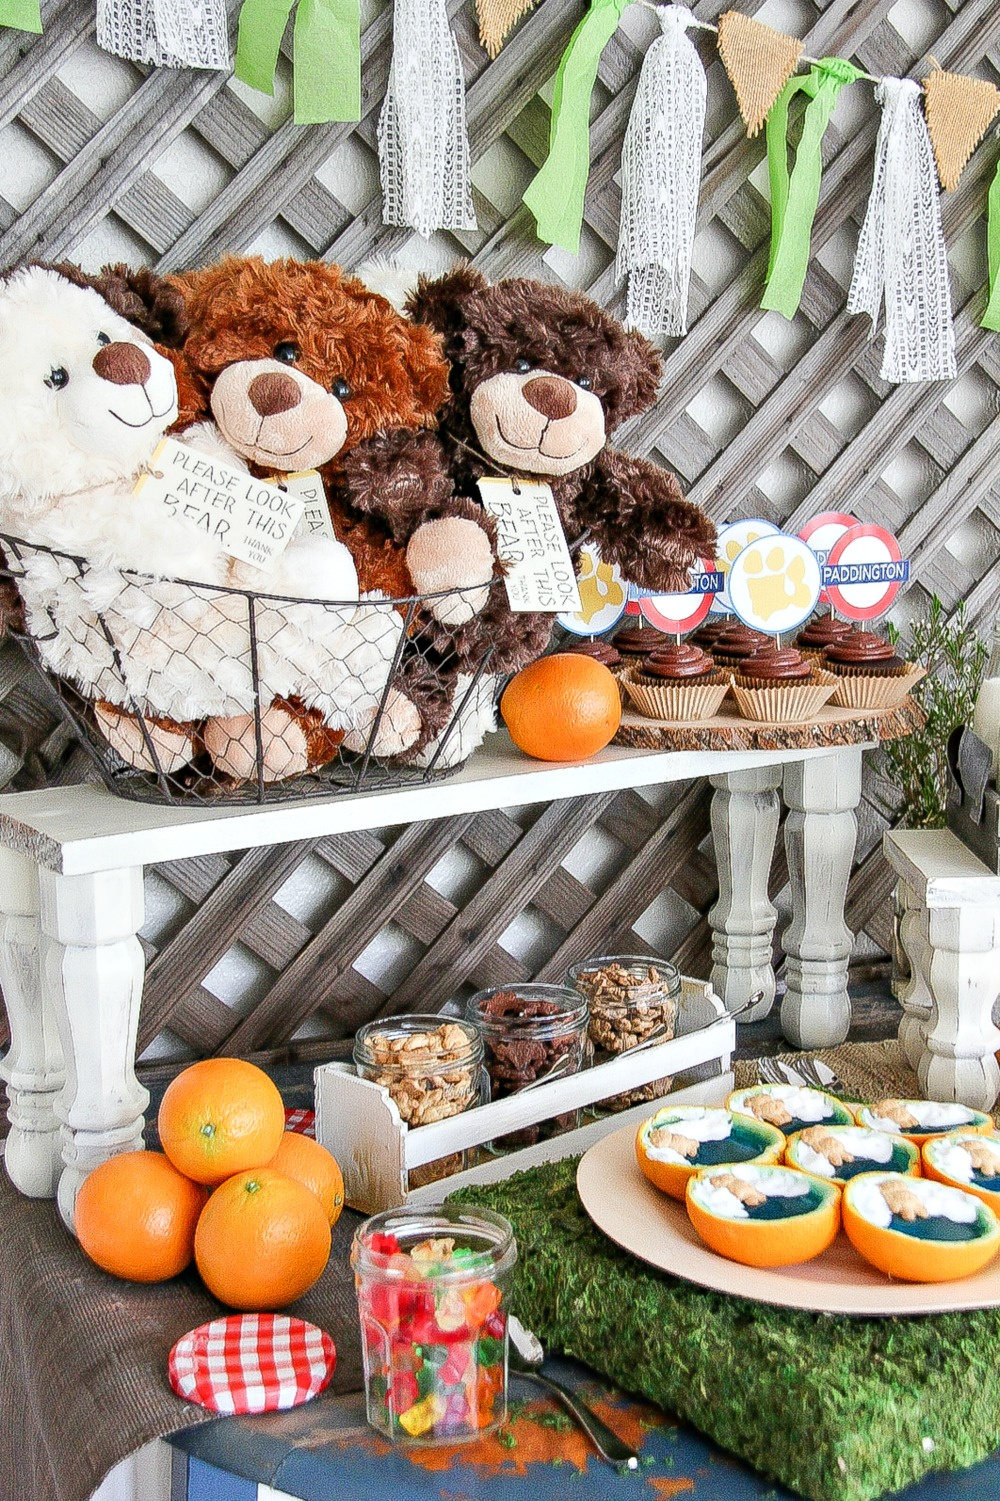 teddy bear party table with snacks and stuffed bears